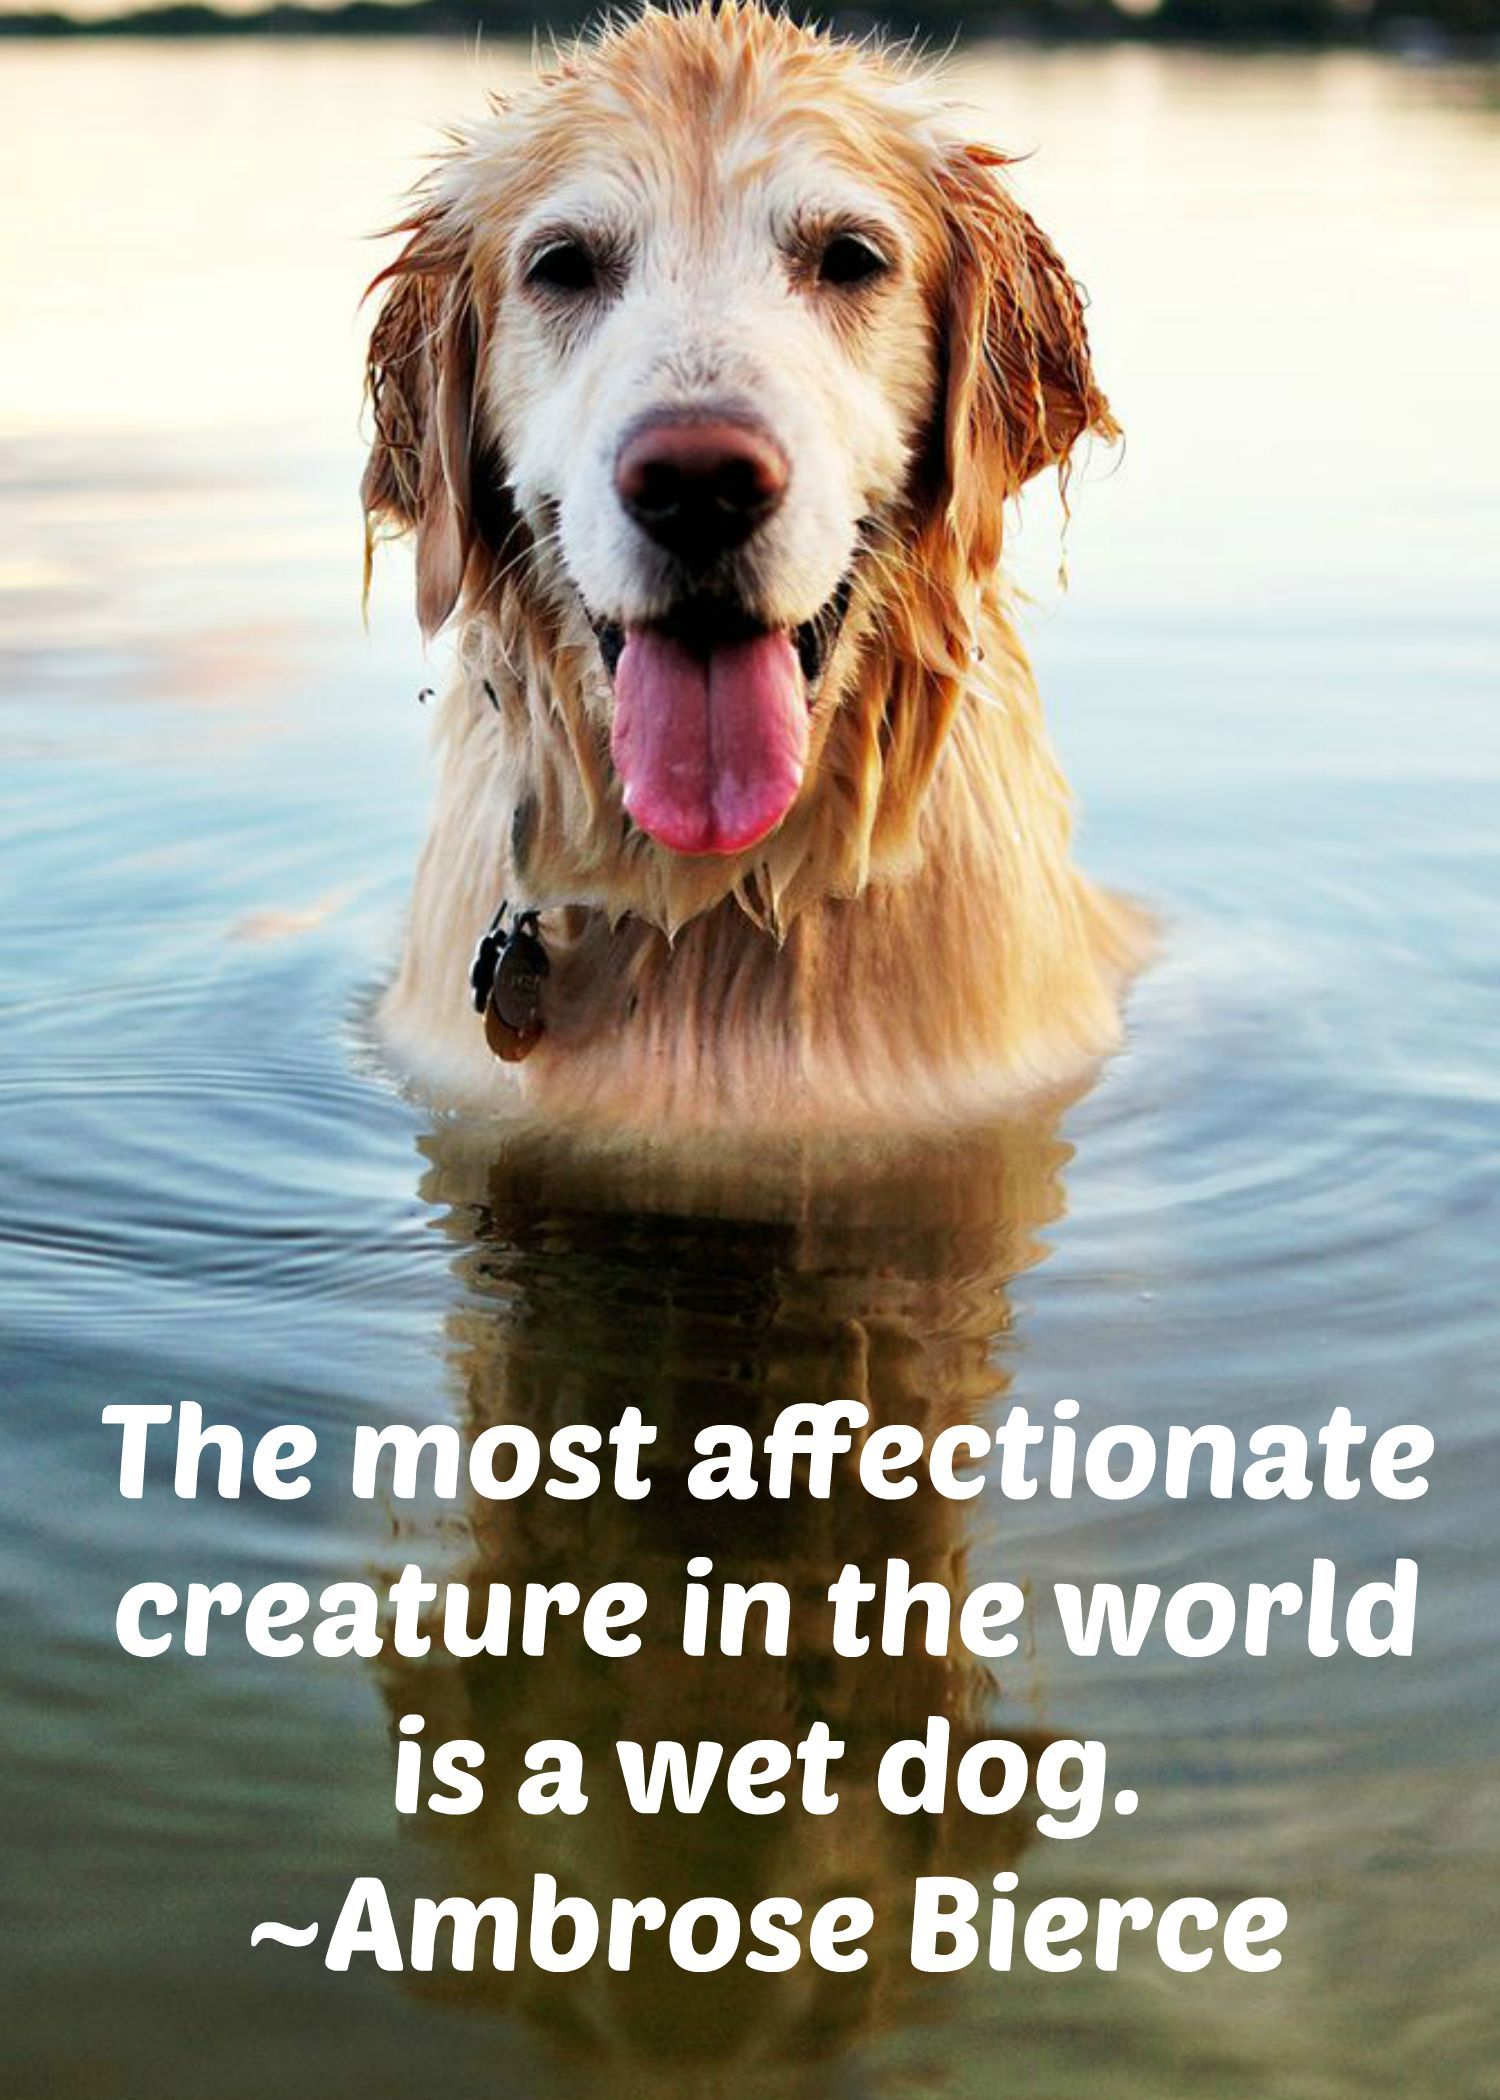 Quotes About Pets And Friendship A Wet Dog Is The Most Affectionate Creature Pet Pets Quote